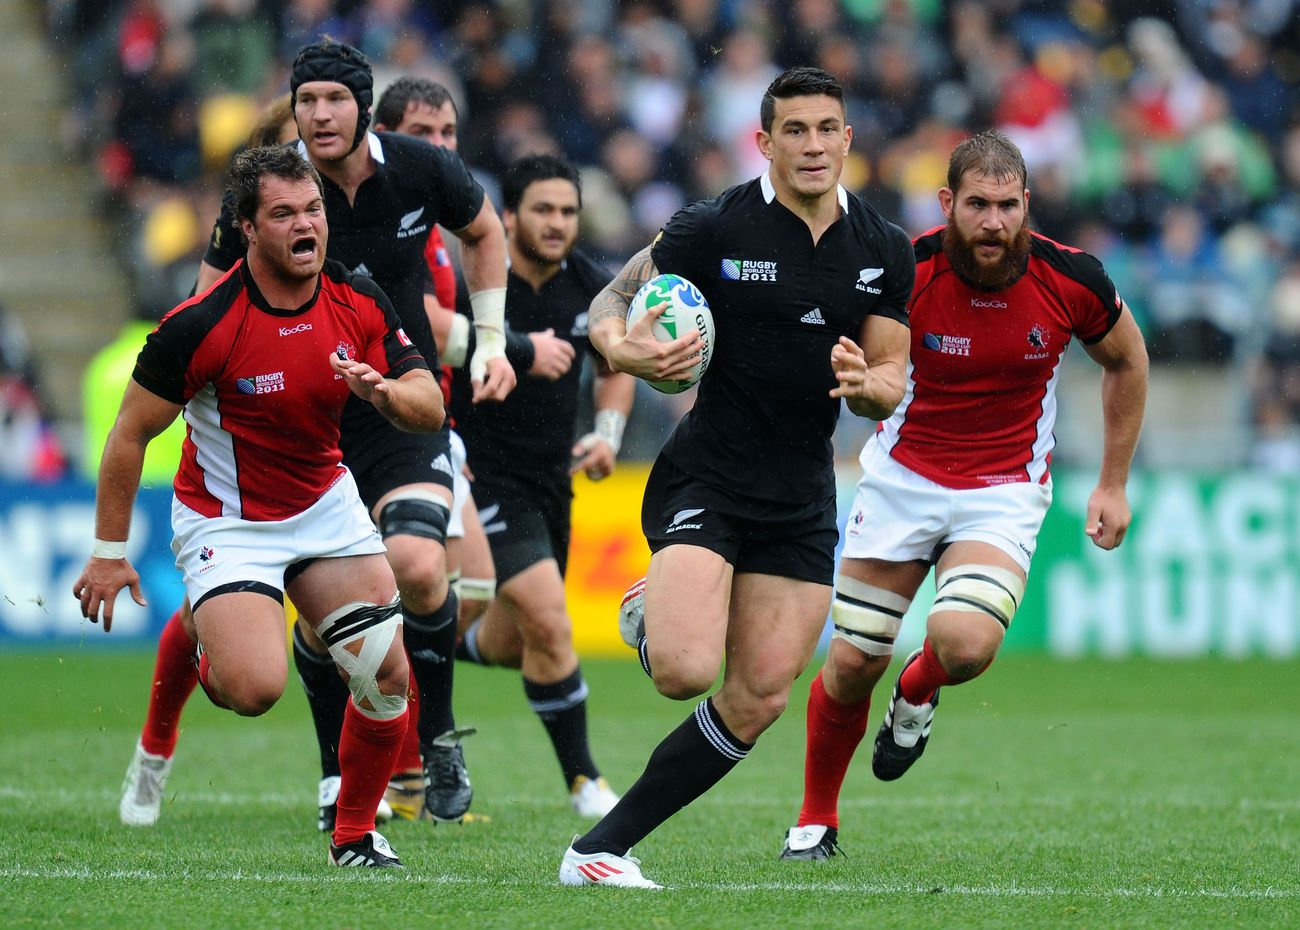 Namibia Rugby Union scrap remainder of rugby season - Sports Leo